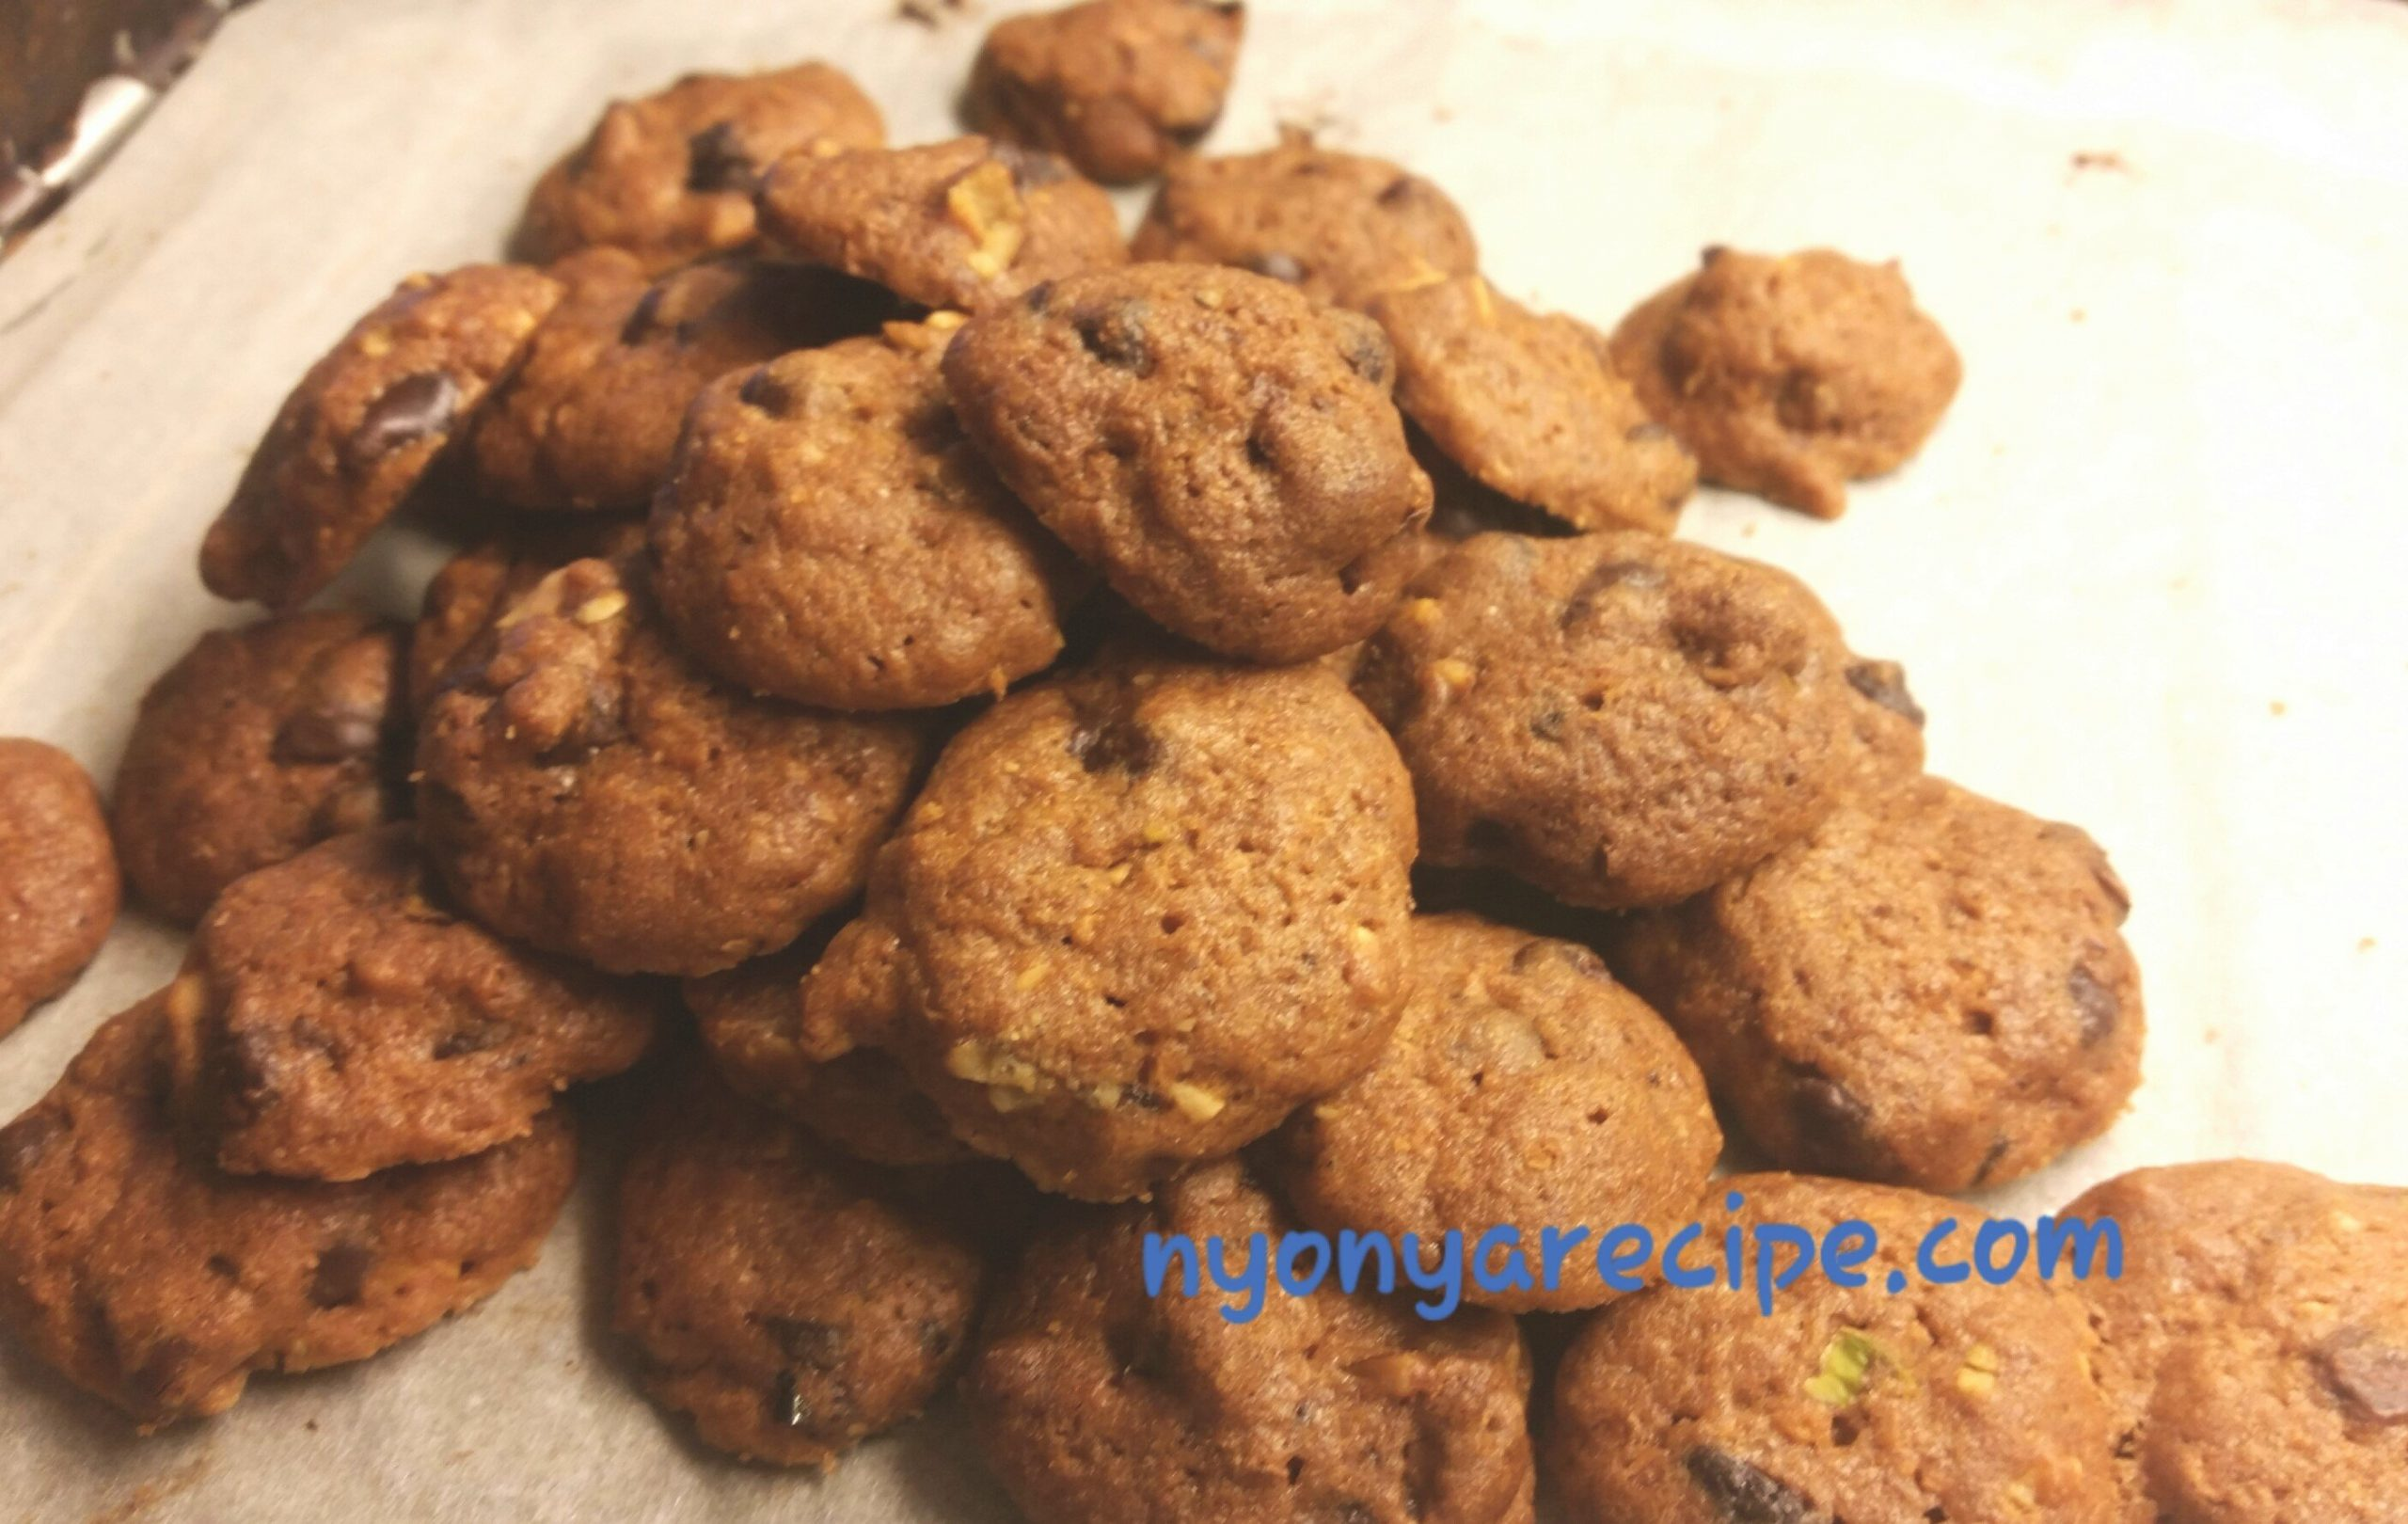 Chocolate chip and nuts cookies fresh from the oven.